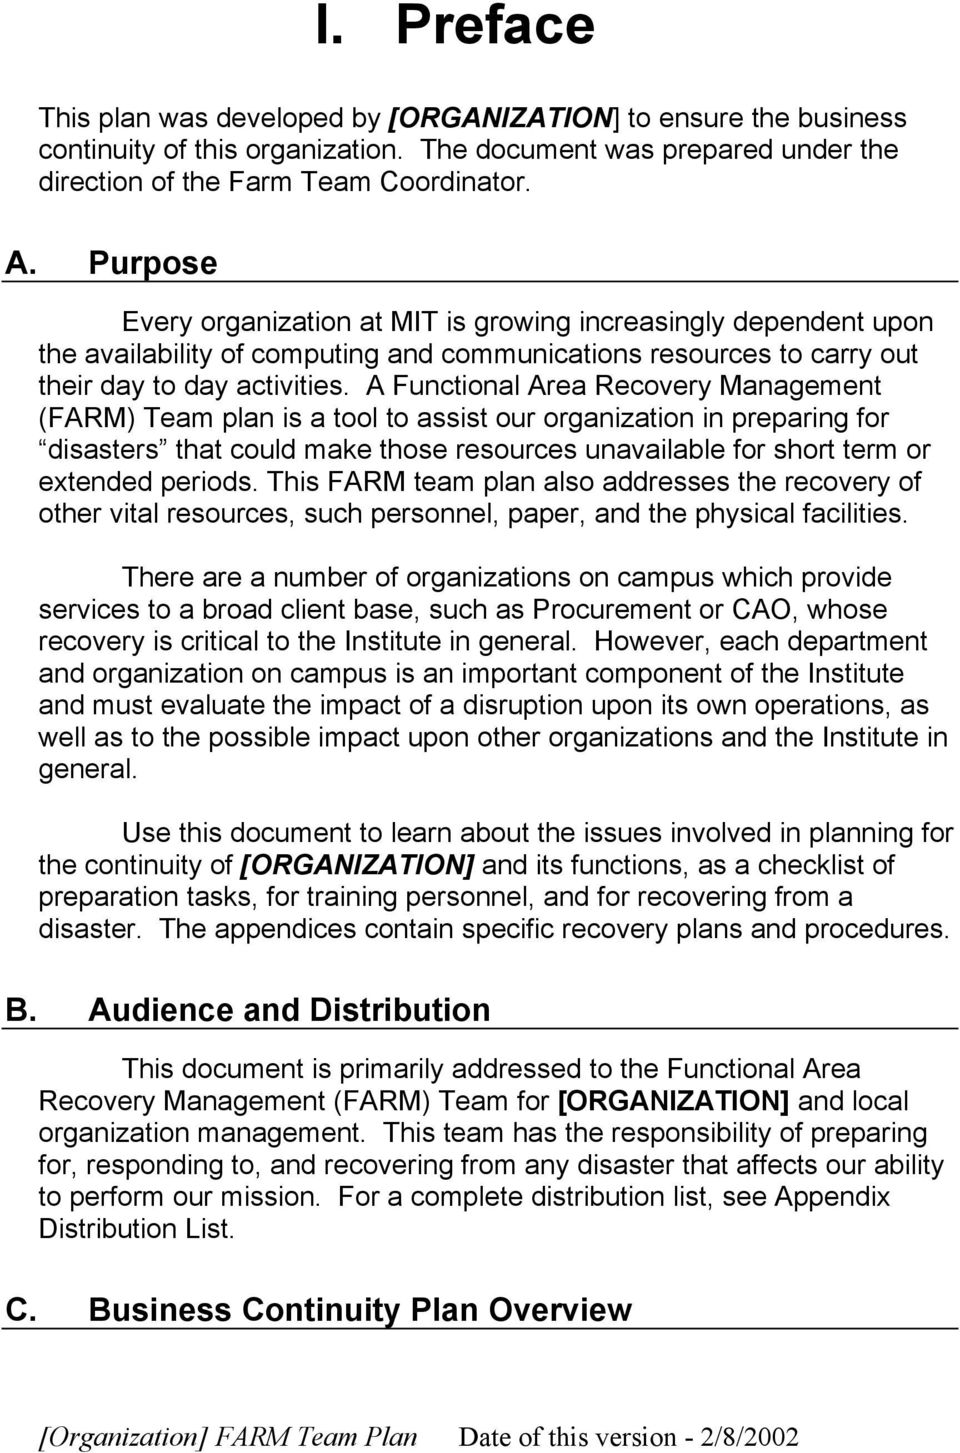 A Functional Area Recovery Management (FARM) Team plan is a tool to assist our organization in preparing for disasters that could make those resources unavailable for short term or extended periods.